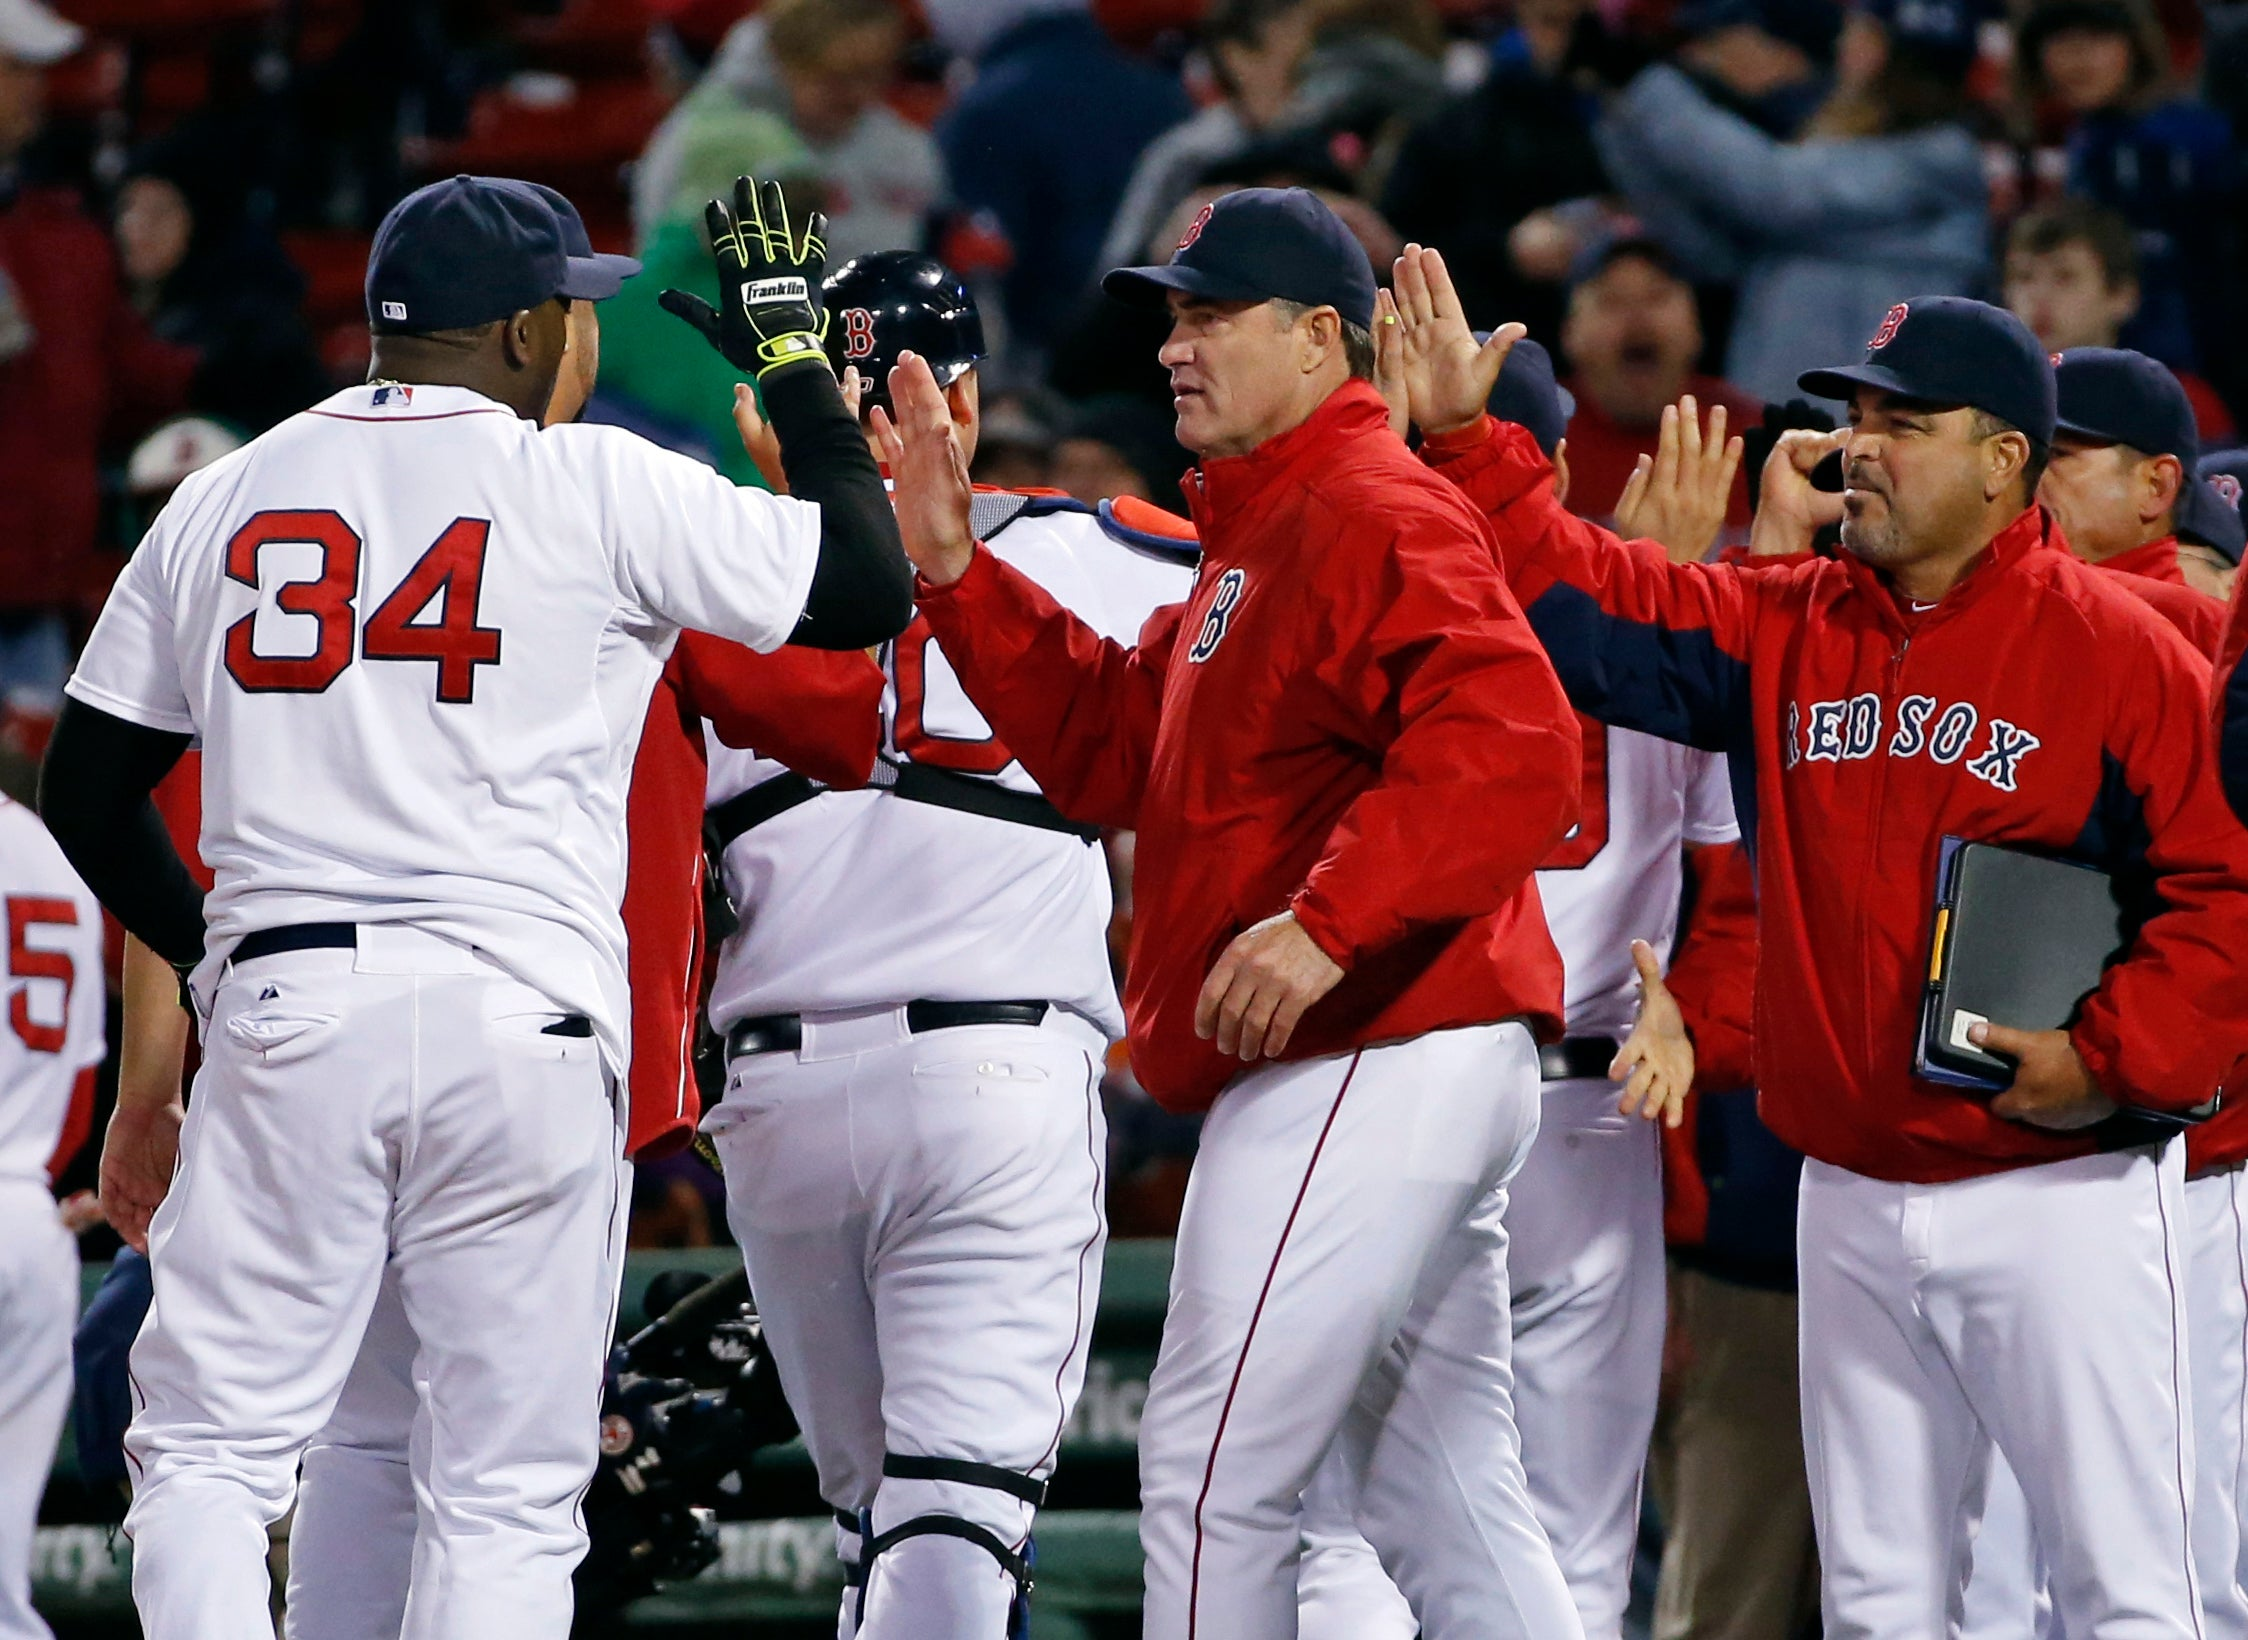 redsox_team-thumb-2248x1640-130546.jpg